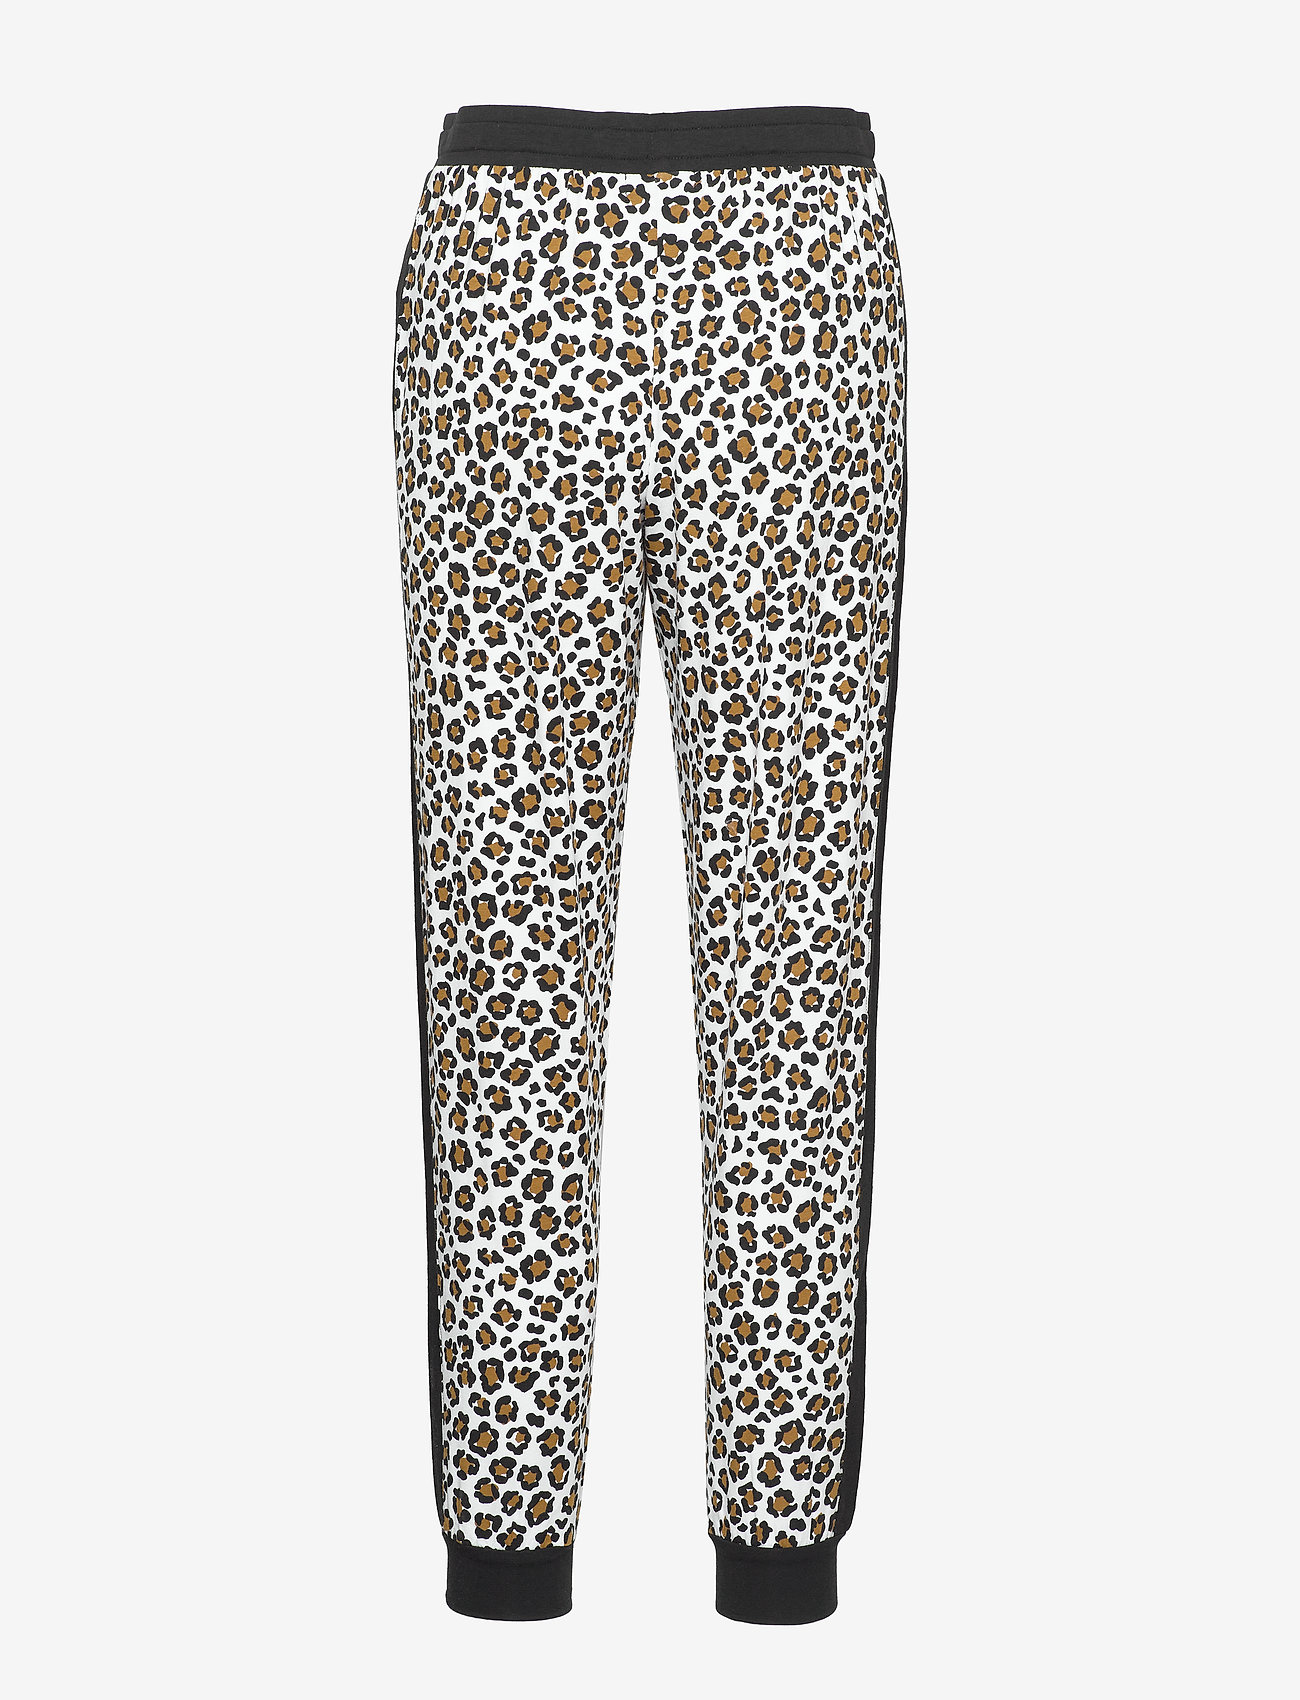 DKNY Homewear - DKNY LEAVING OUR MARK JOGGER - doły - white animal - 1